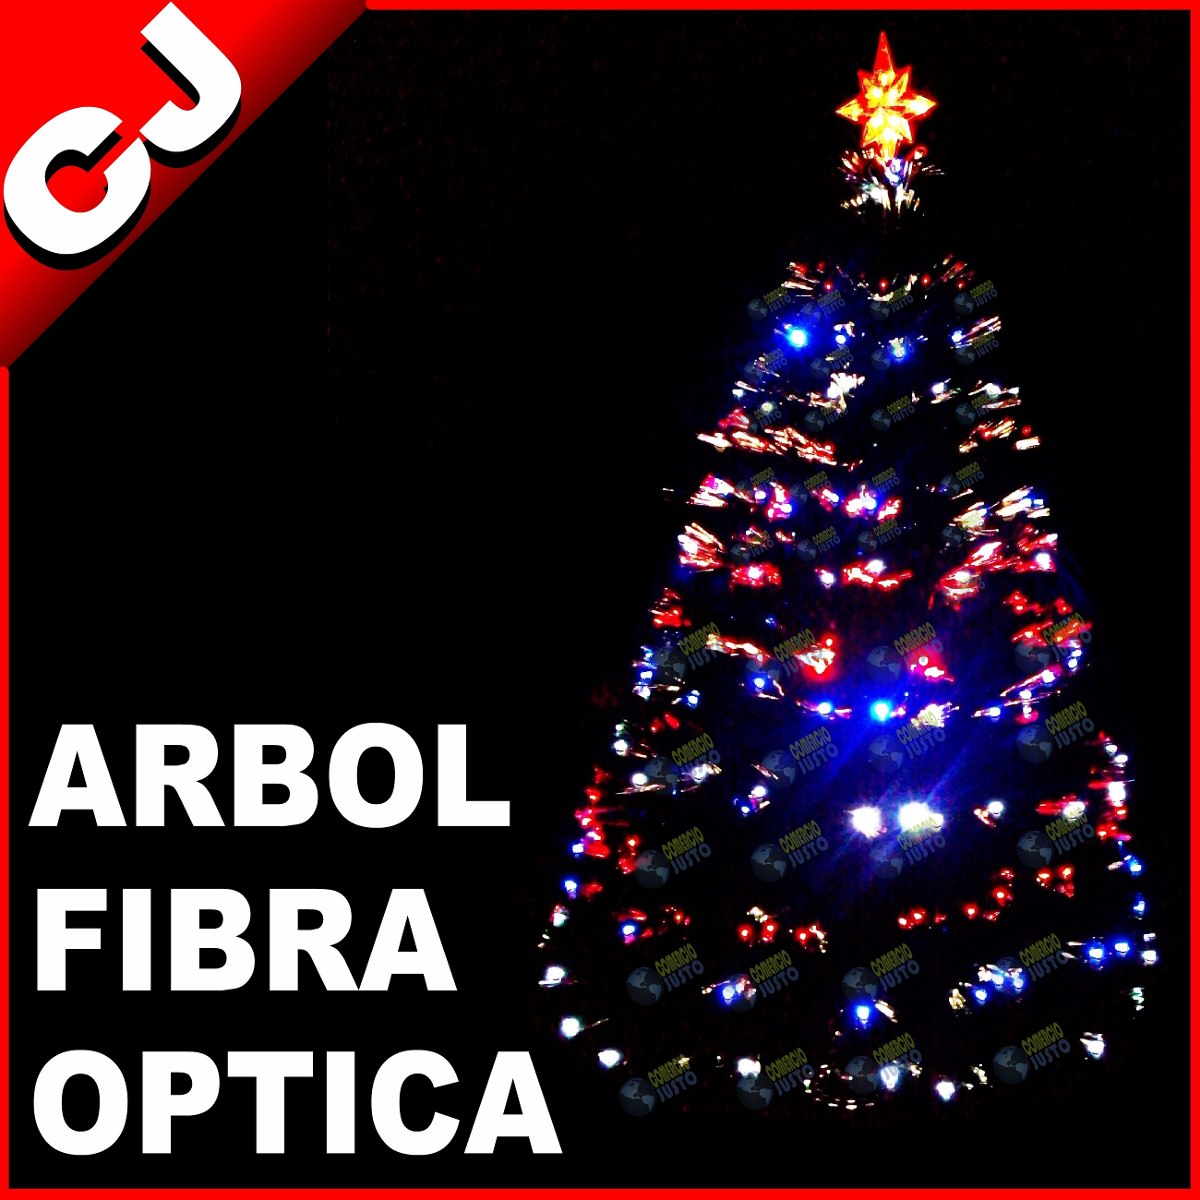 Arbol verde 210 fibra optica y luces led integradas - Luces para arboles ...